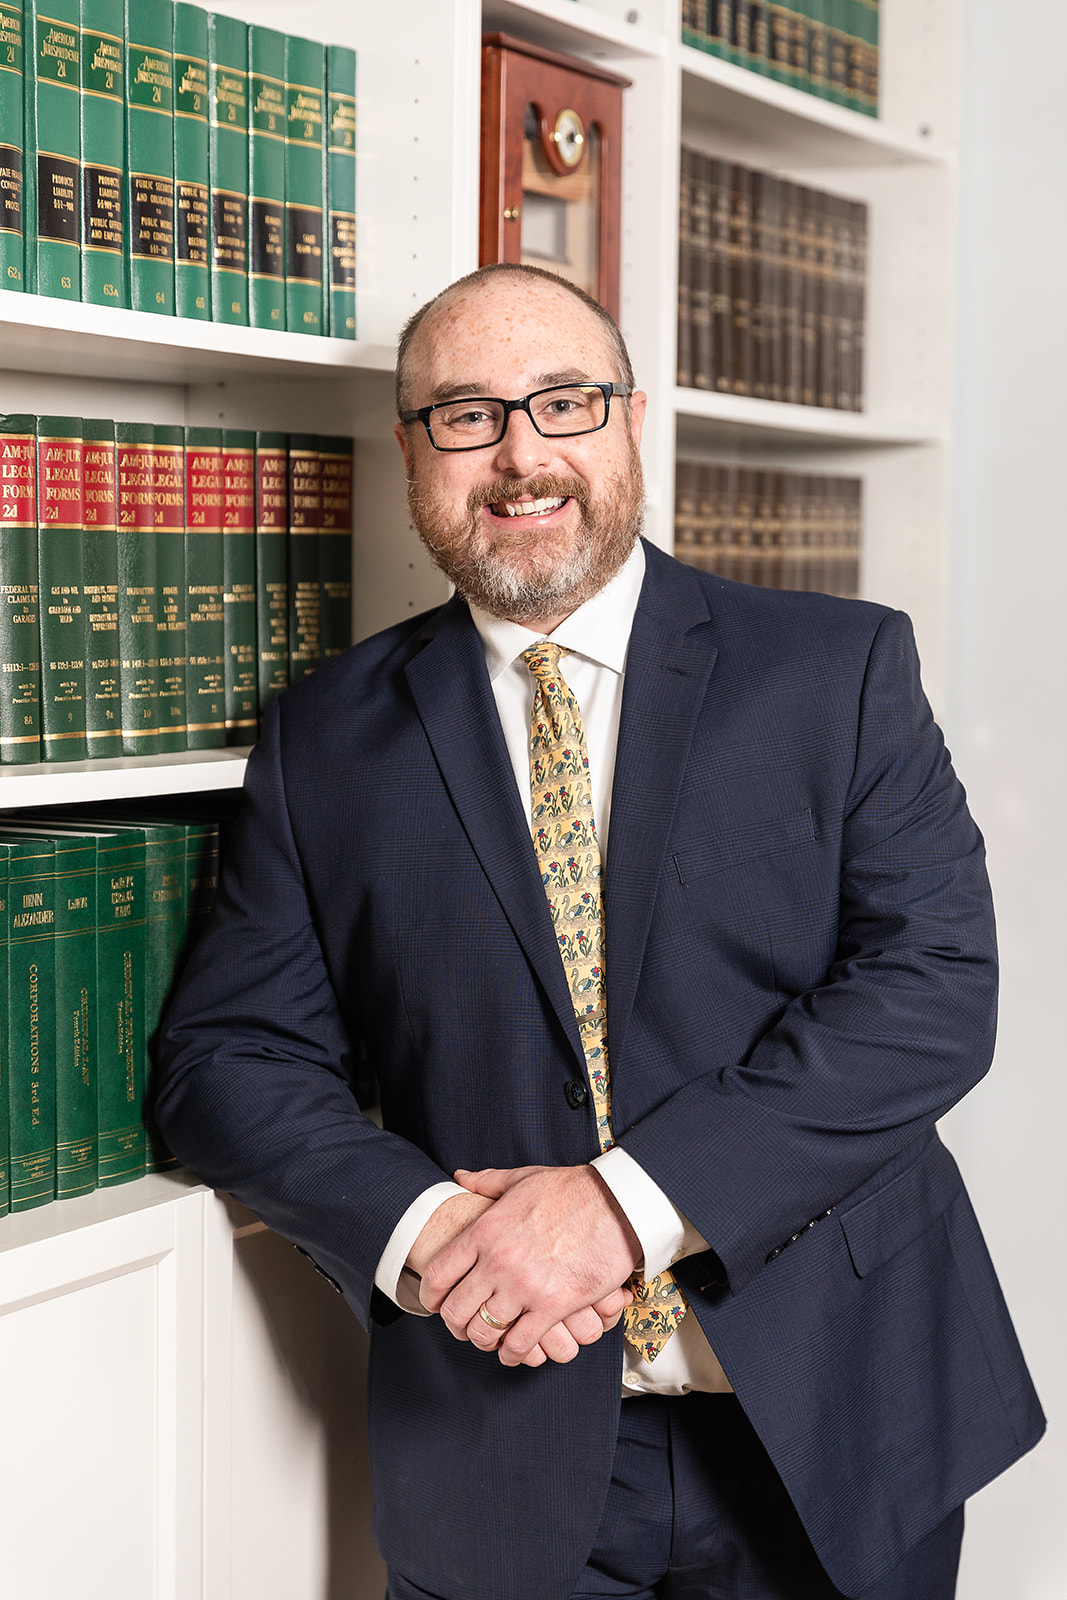 Nicholas B. Proy - Proy Law Firm - Carroll County Small Business, Wills, Trusts and Estate Planning, and Probate Lawyer Attorney